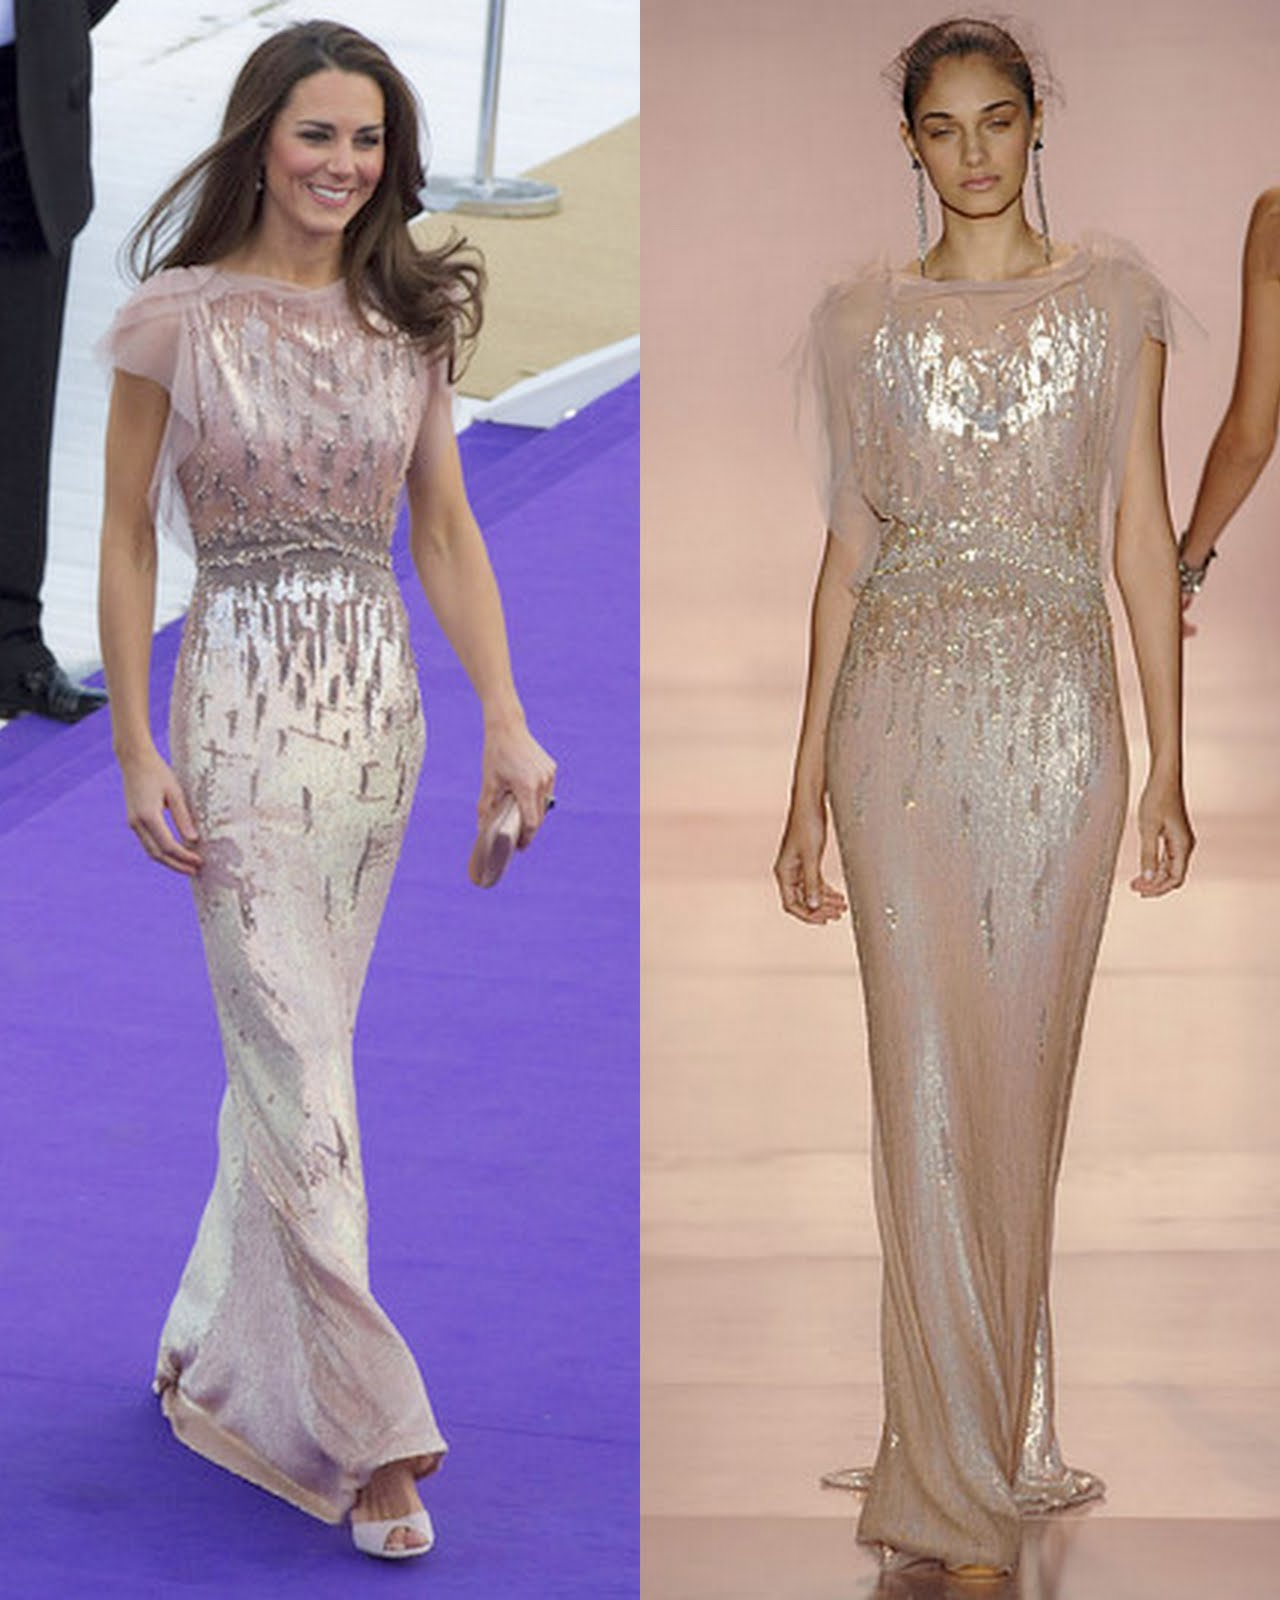 Frills and Thrills: Kate Middleton & Blair Waldorf in Jenny Packham